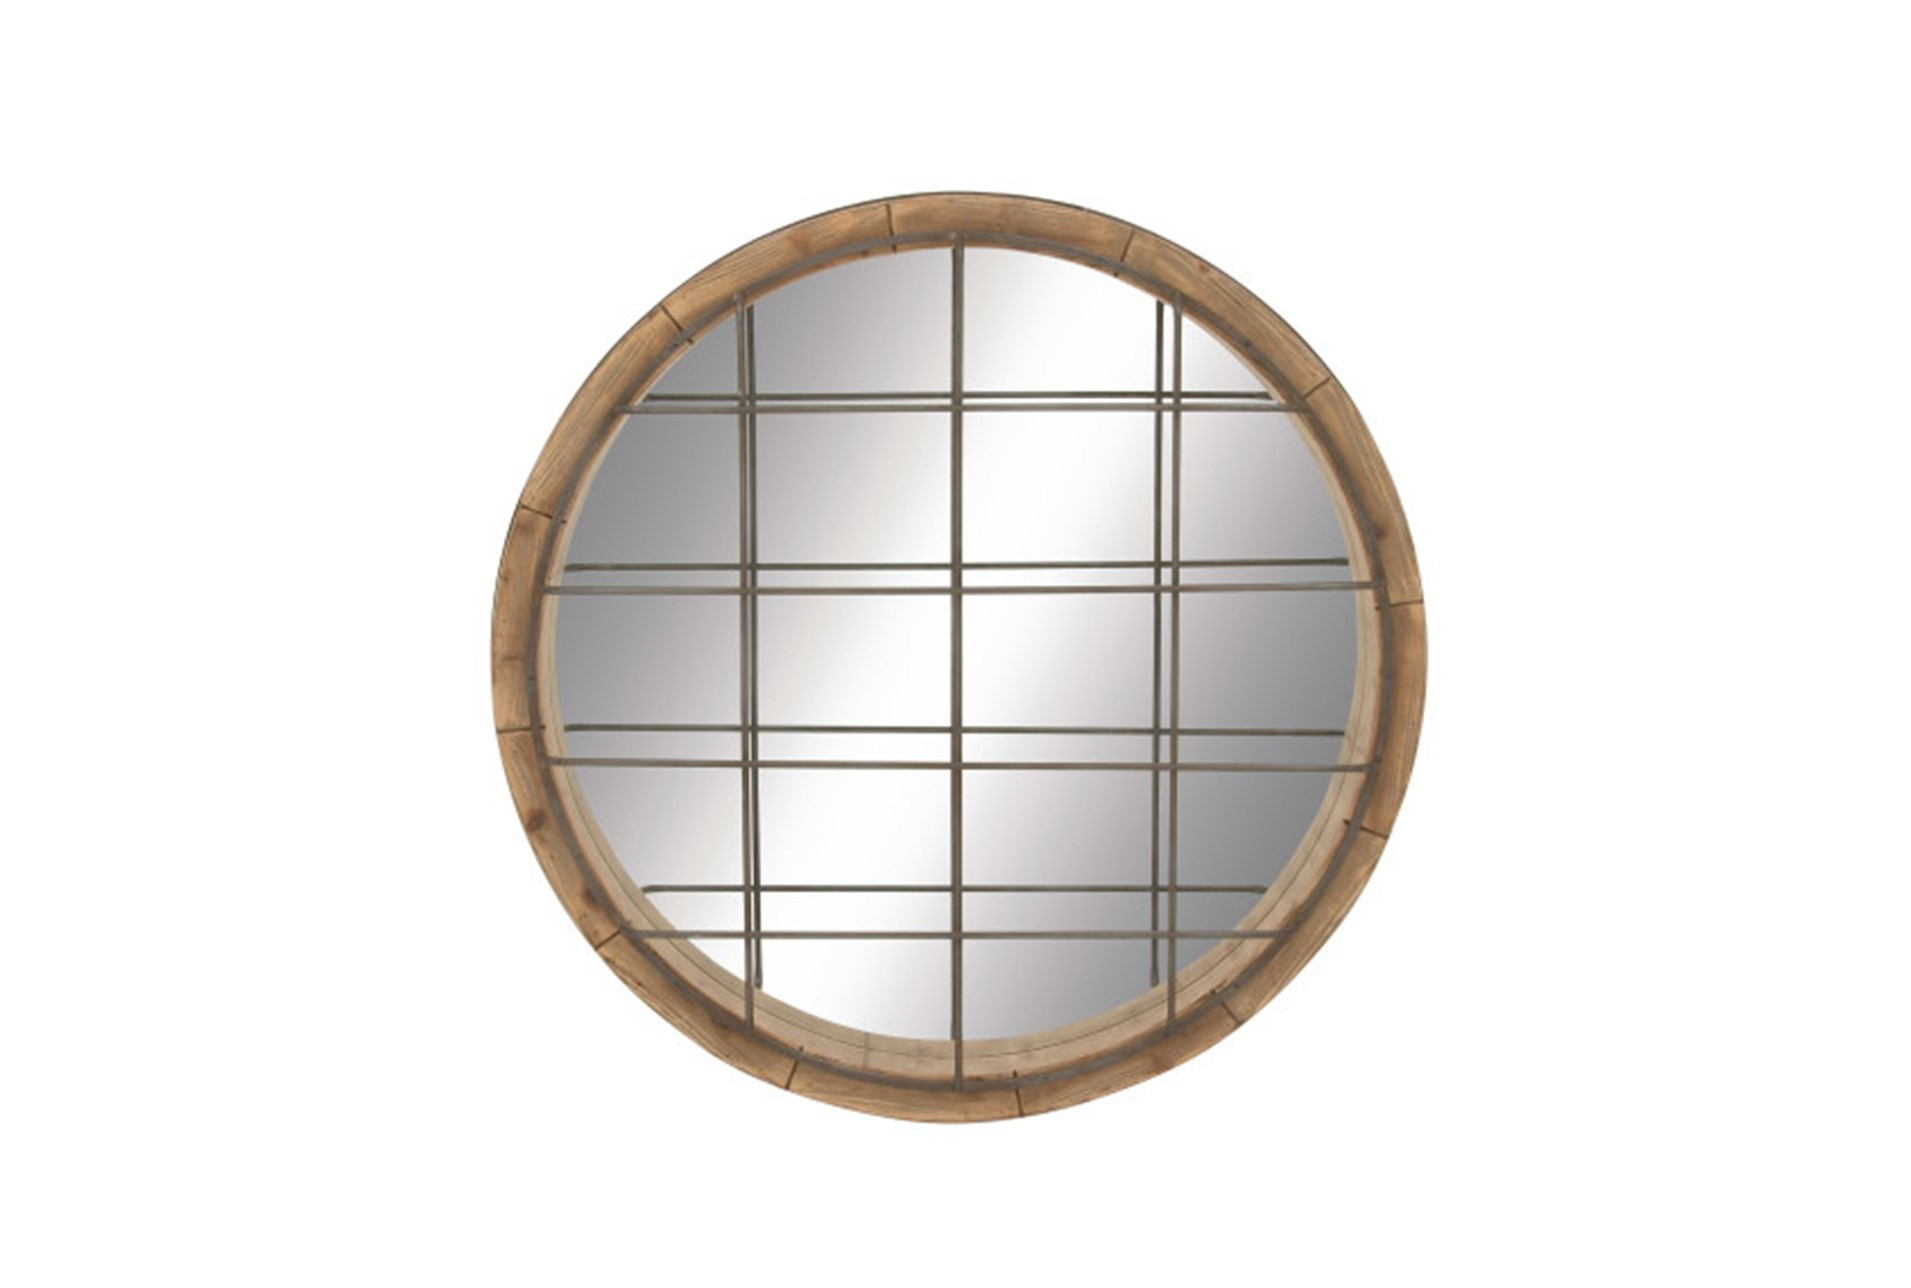 48 round mirror. Display Product Reviews For 48 INCH WOOD METAL GRID WALL MIRROR Round Mirror